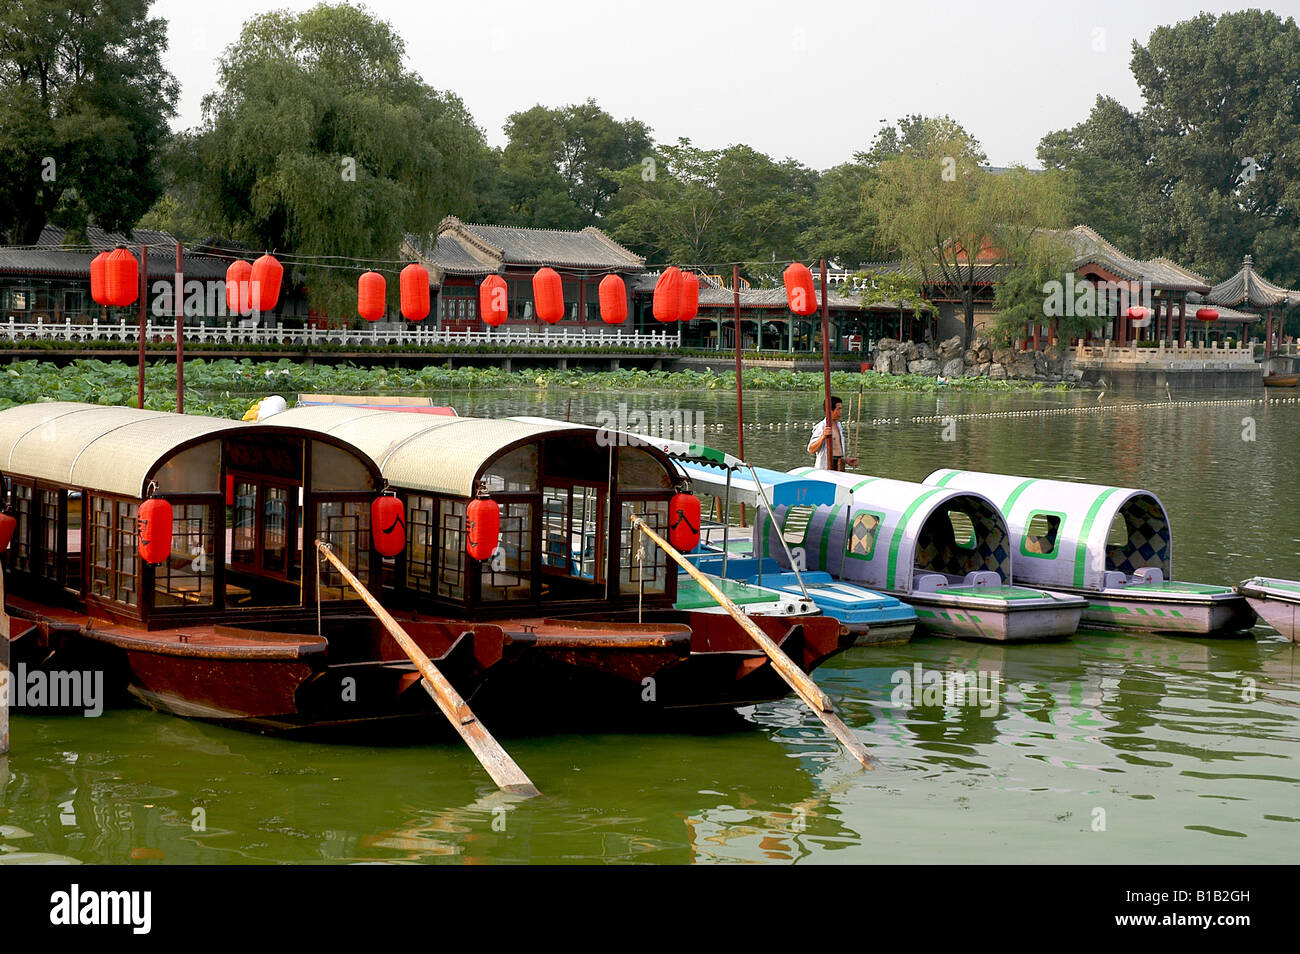 boats on Grand Canal,China - Stock Image